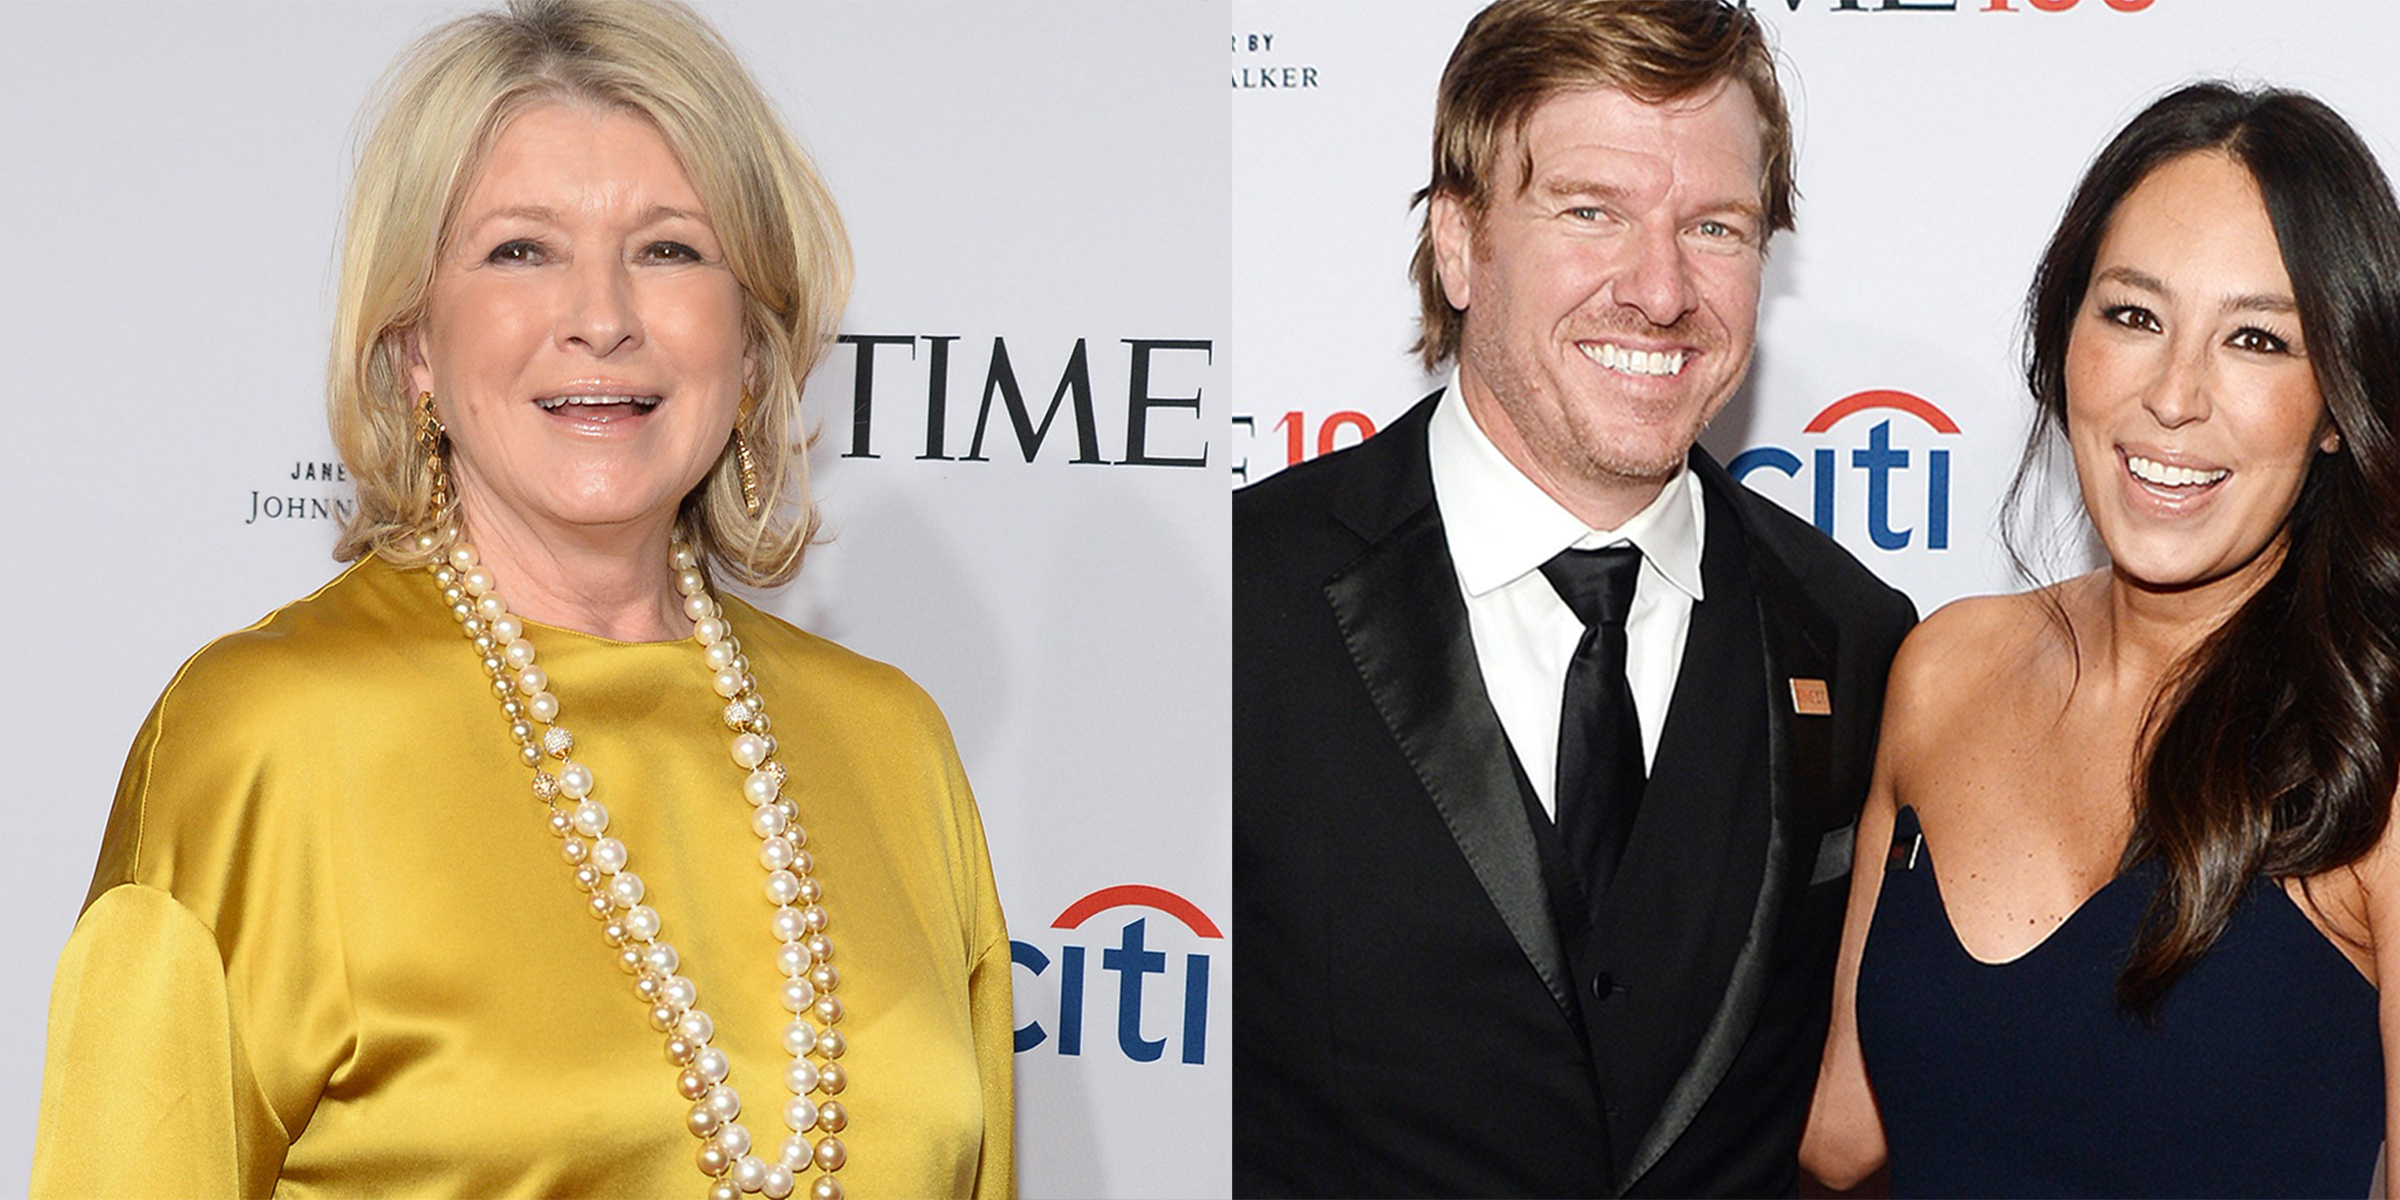 Chip and Joanna Gaines met Martha Stewart at TIME 100 gala